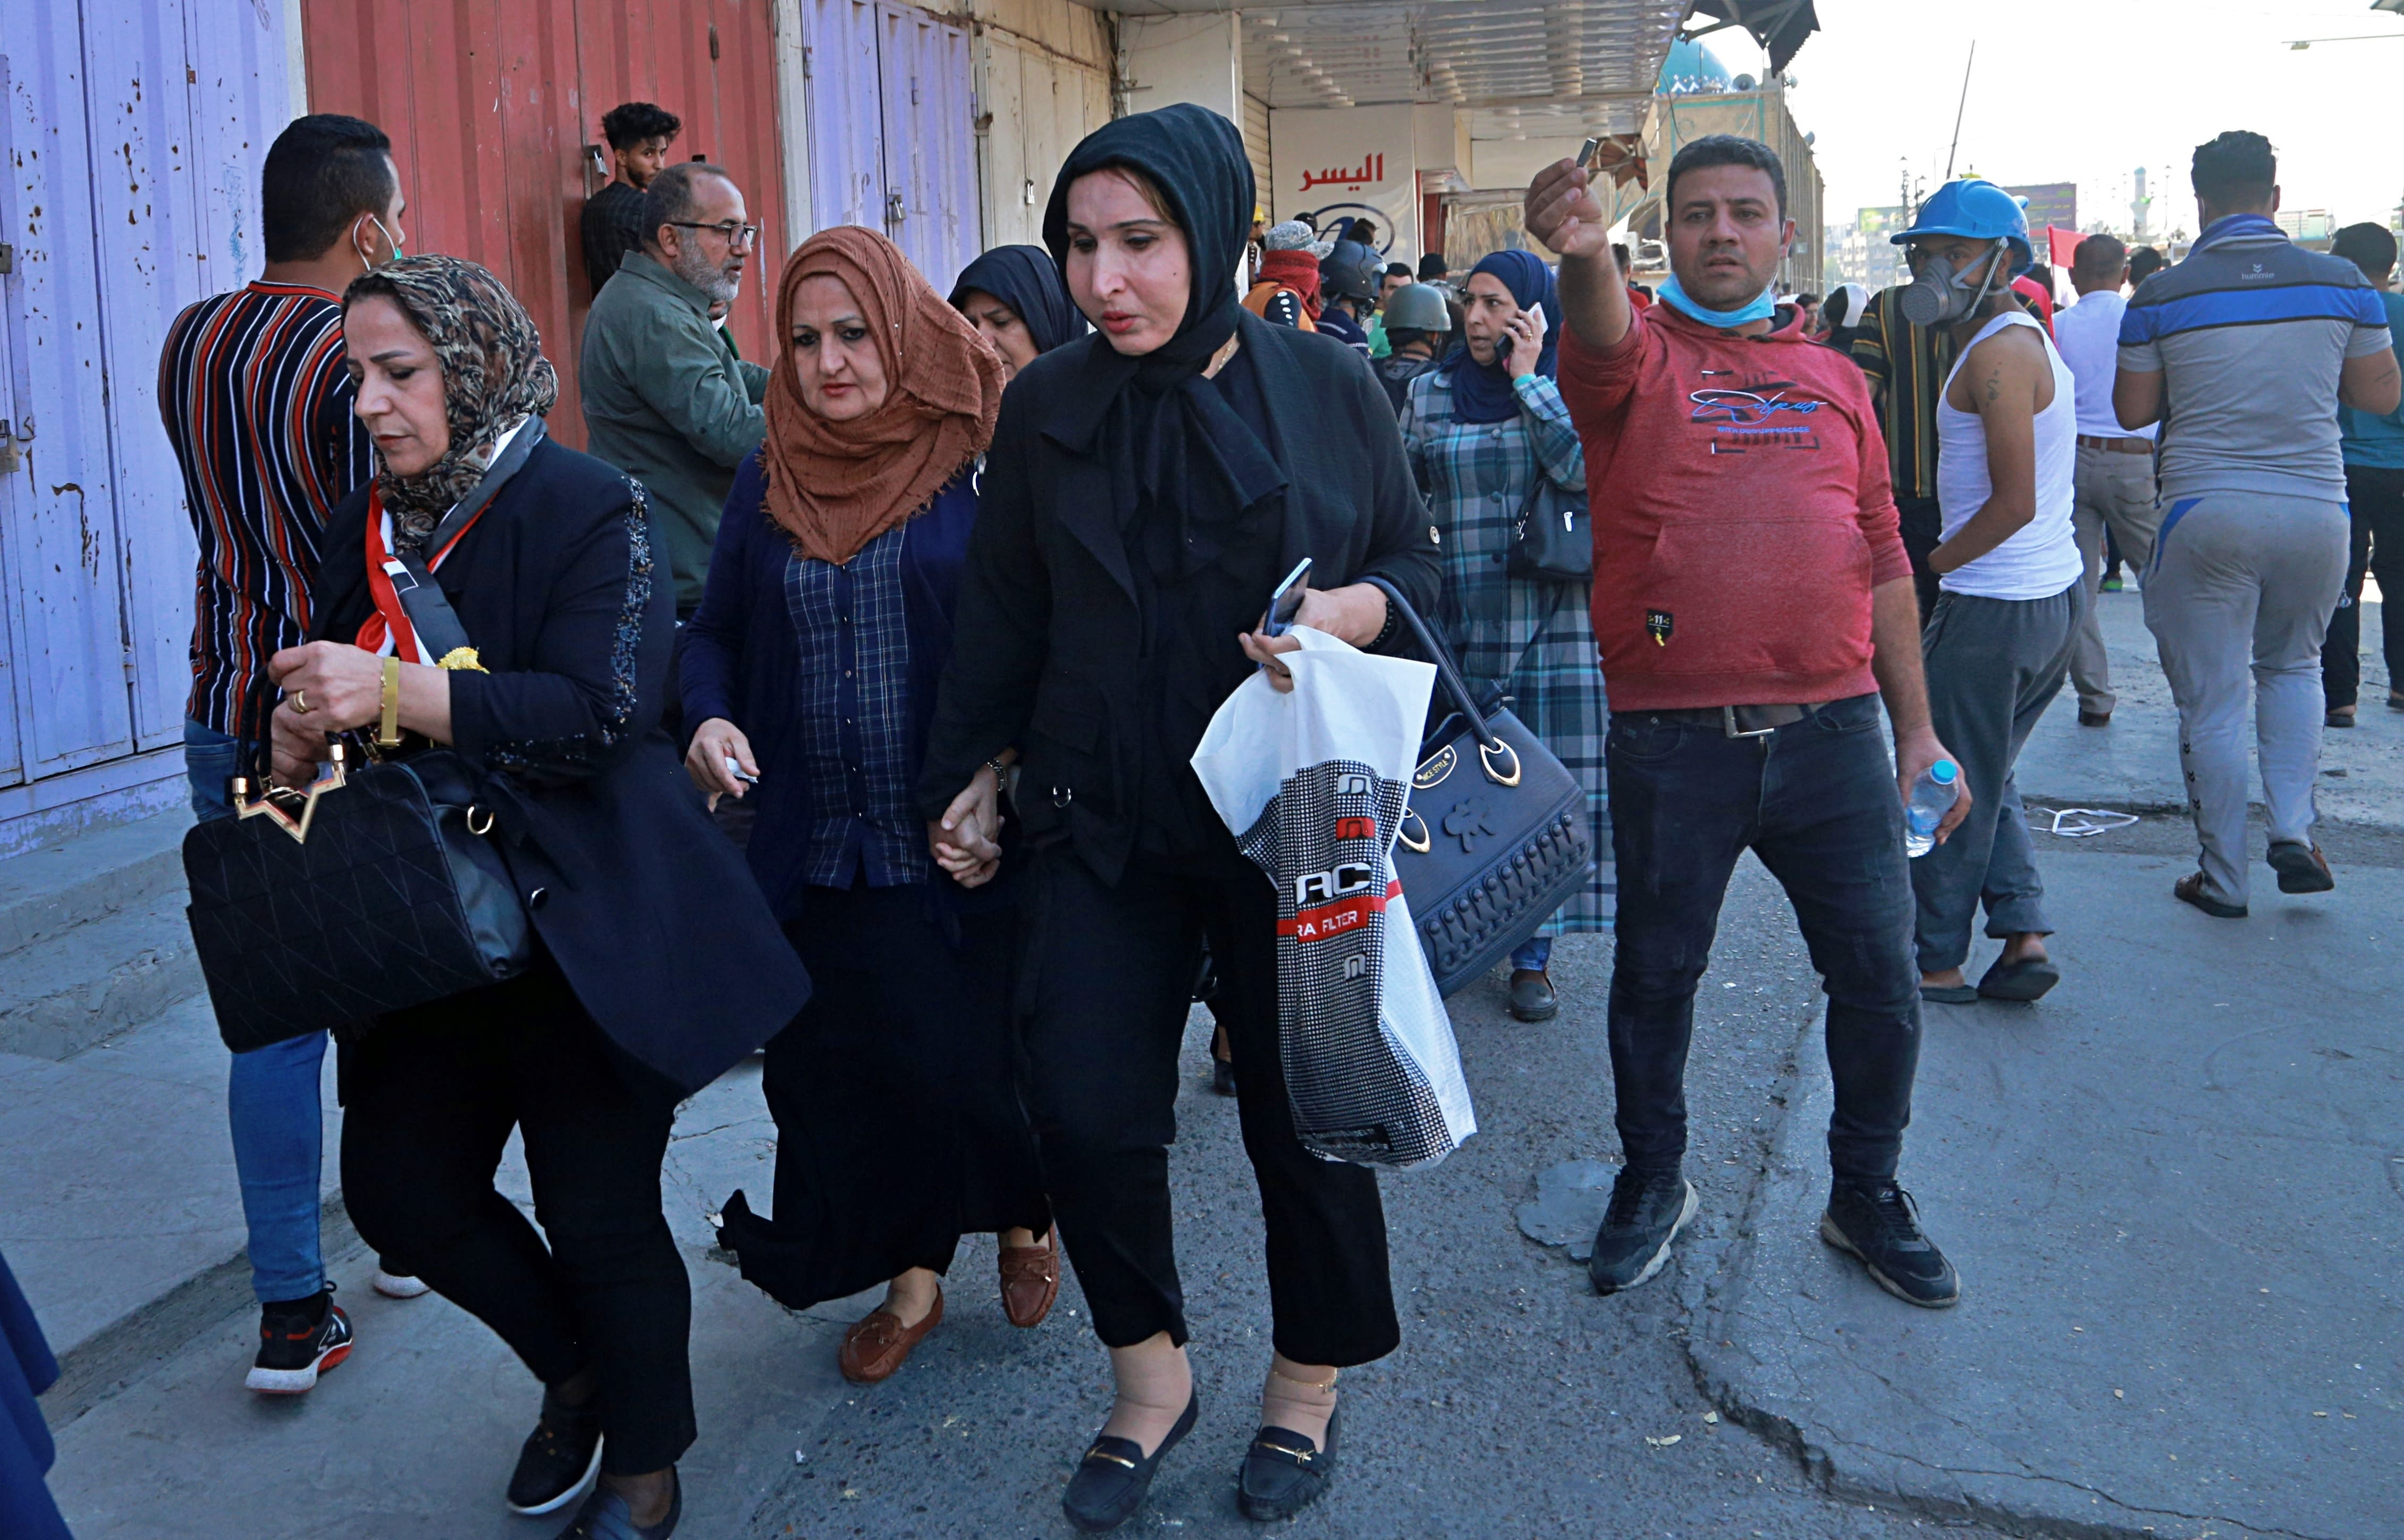 Employees of the central bank leave their workplaces in central Baghdad, Iraq, Wednesday, Nov. 6, 2019. Iraqi security forces deployed in large numbers around the bank and began evacuating employees from the building. The protesters did not appear to be heading toward the bank itself. (AP Photo/Hadi Mizban)